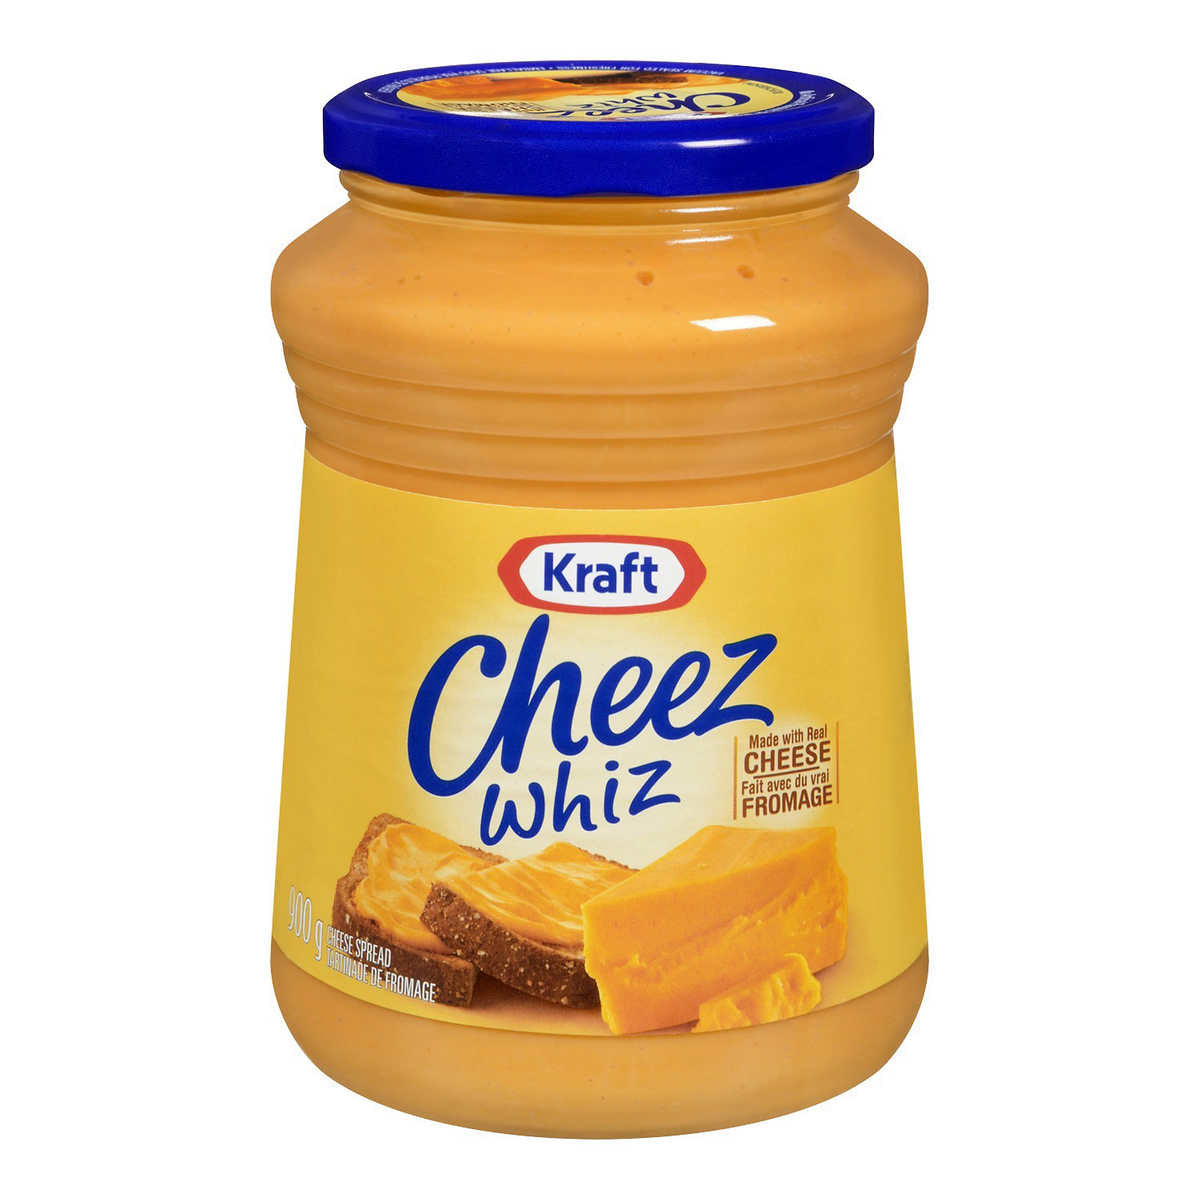 CHEEZ WHIZ PLAIN BOTTLE